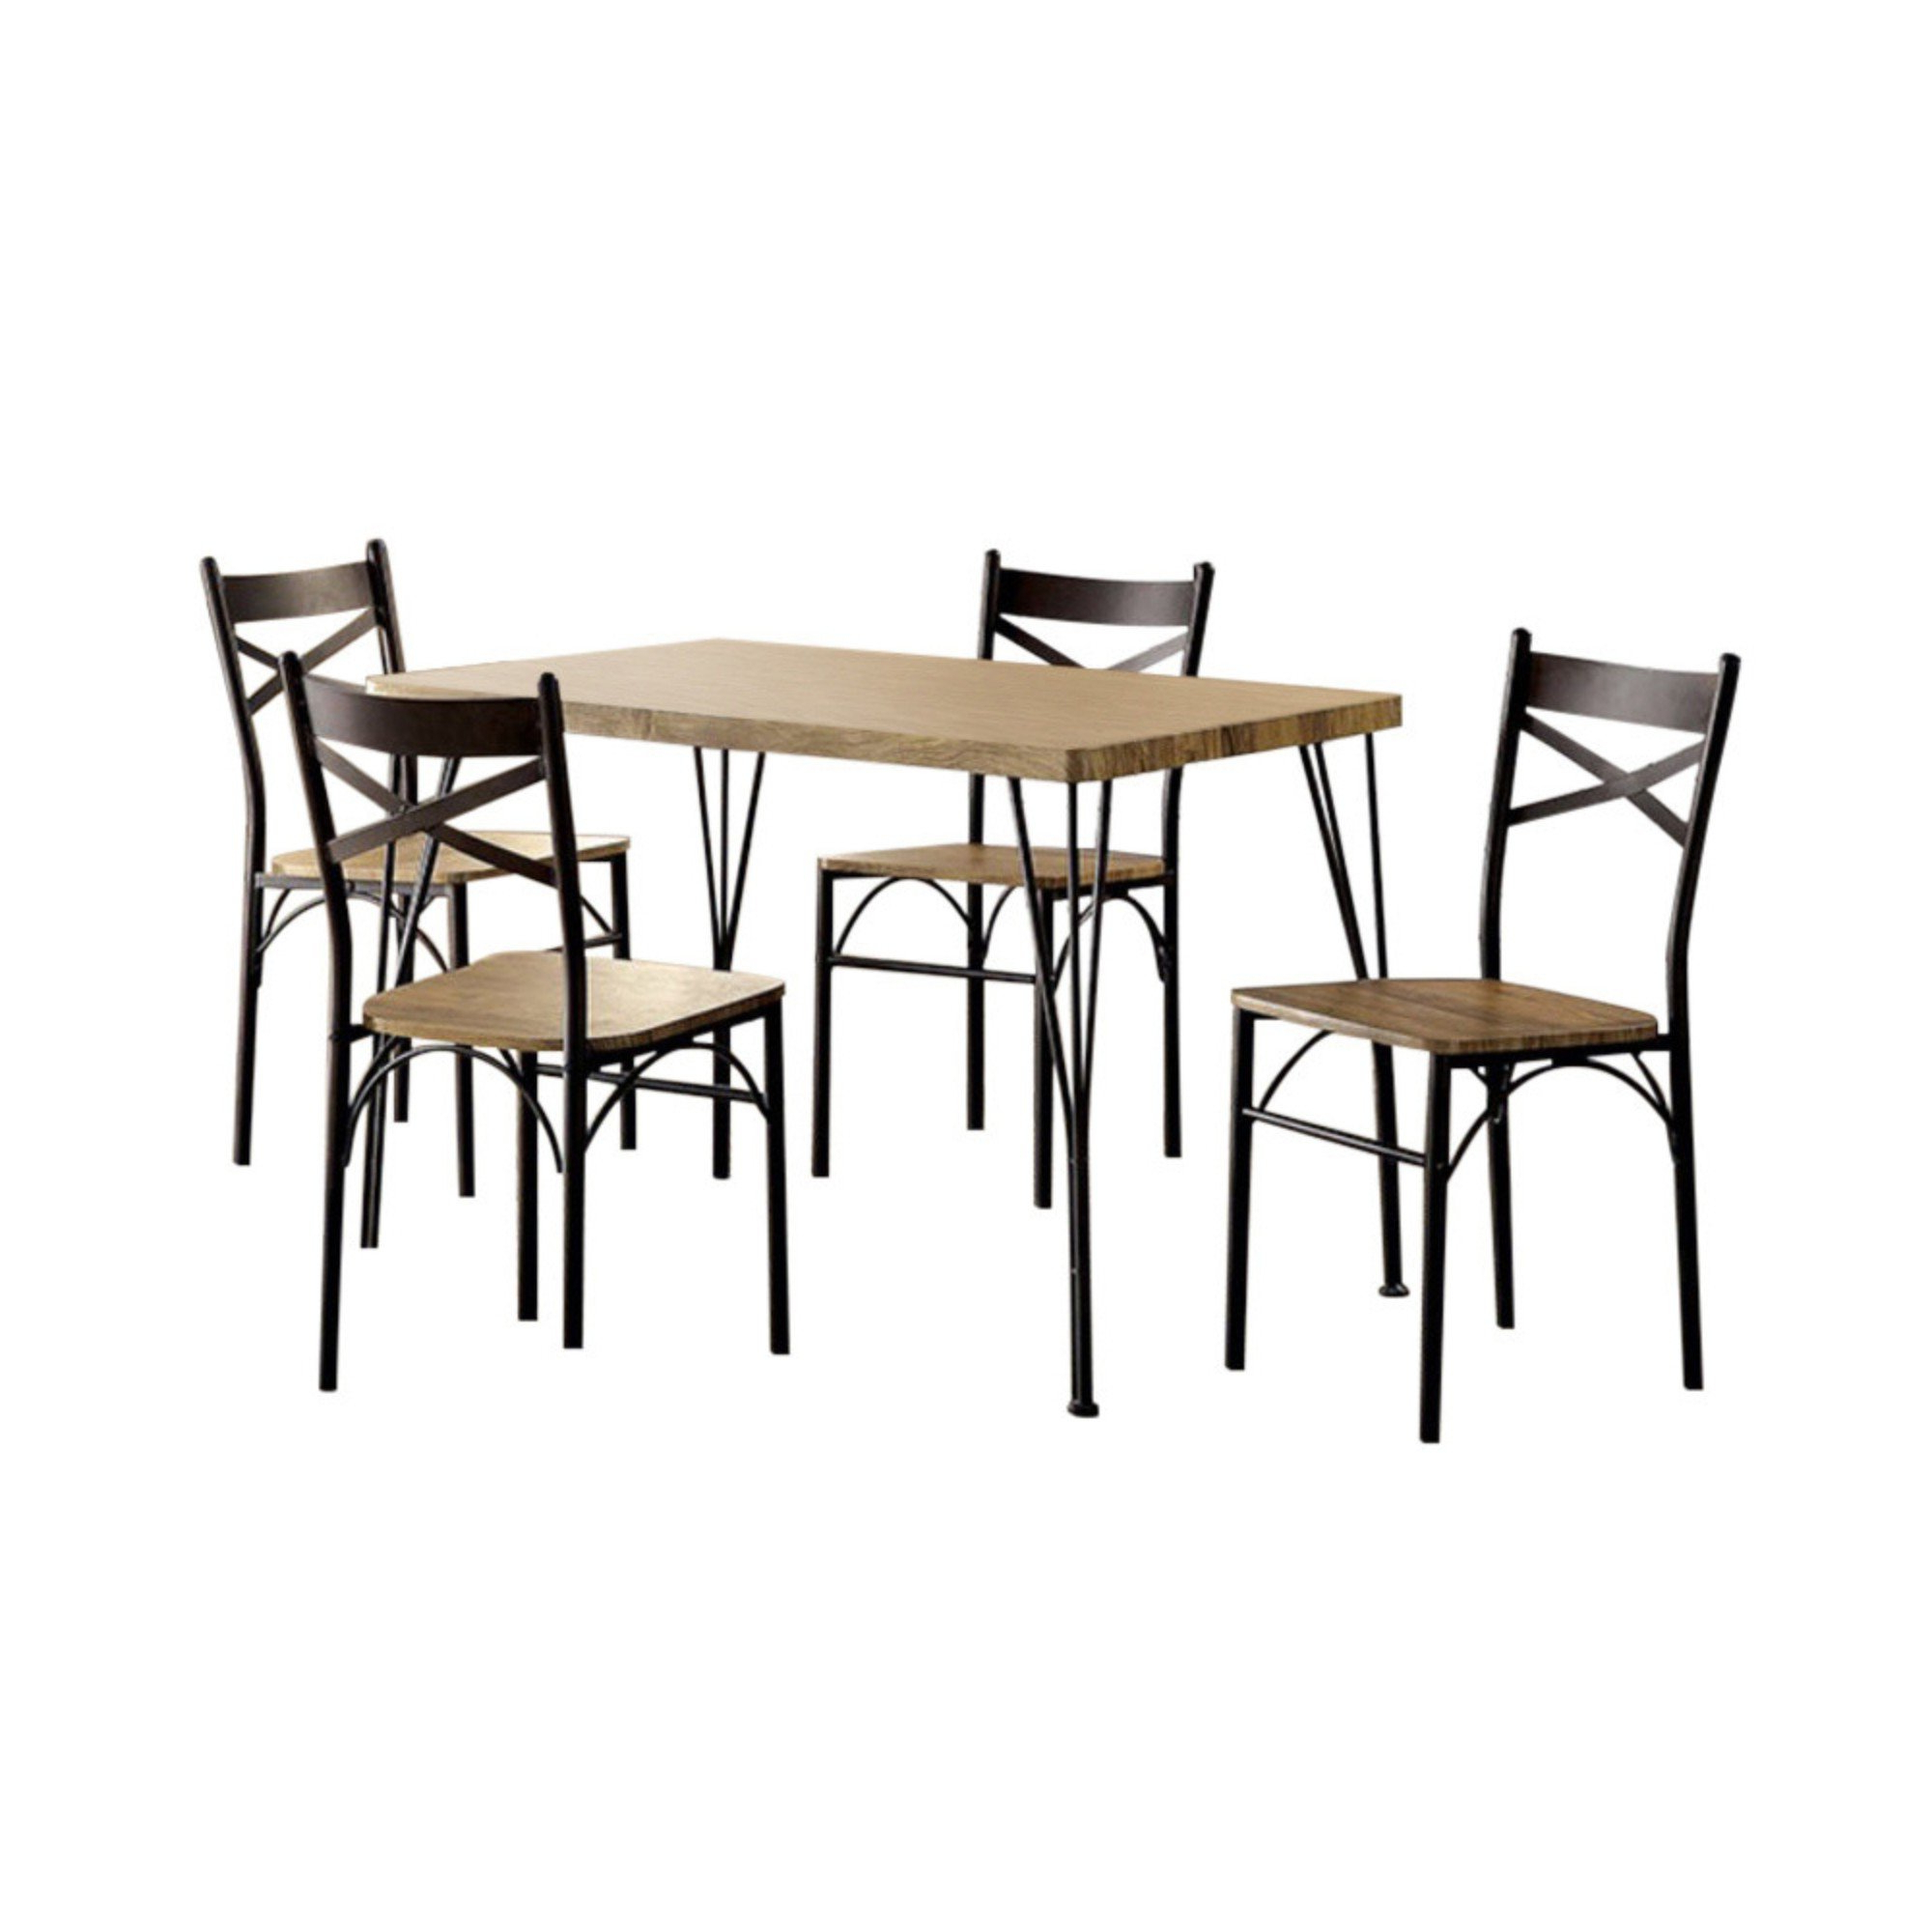 Wayfair Pertaining To Casiano 5 Piece Dining Sets (View 3 of 25)